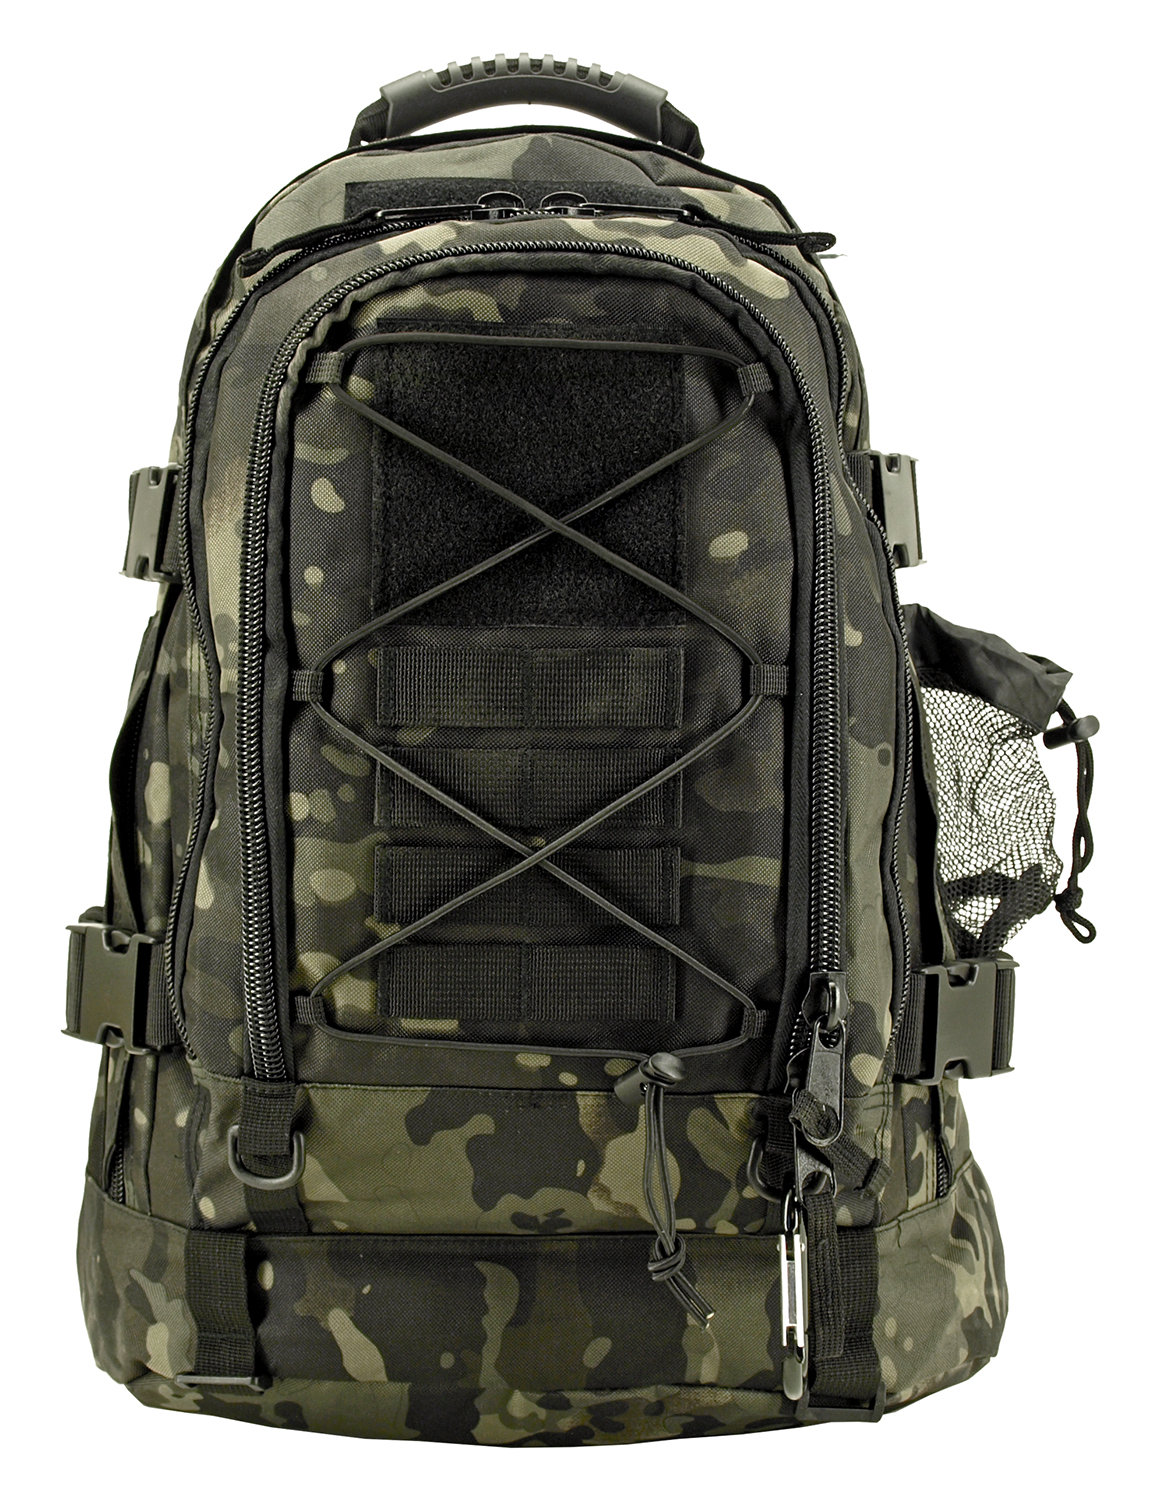 Expandable Tactical Elite Backpack - Black Multi-cam